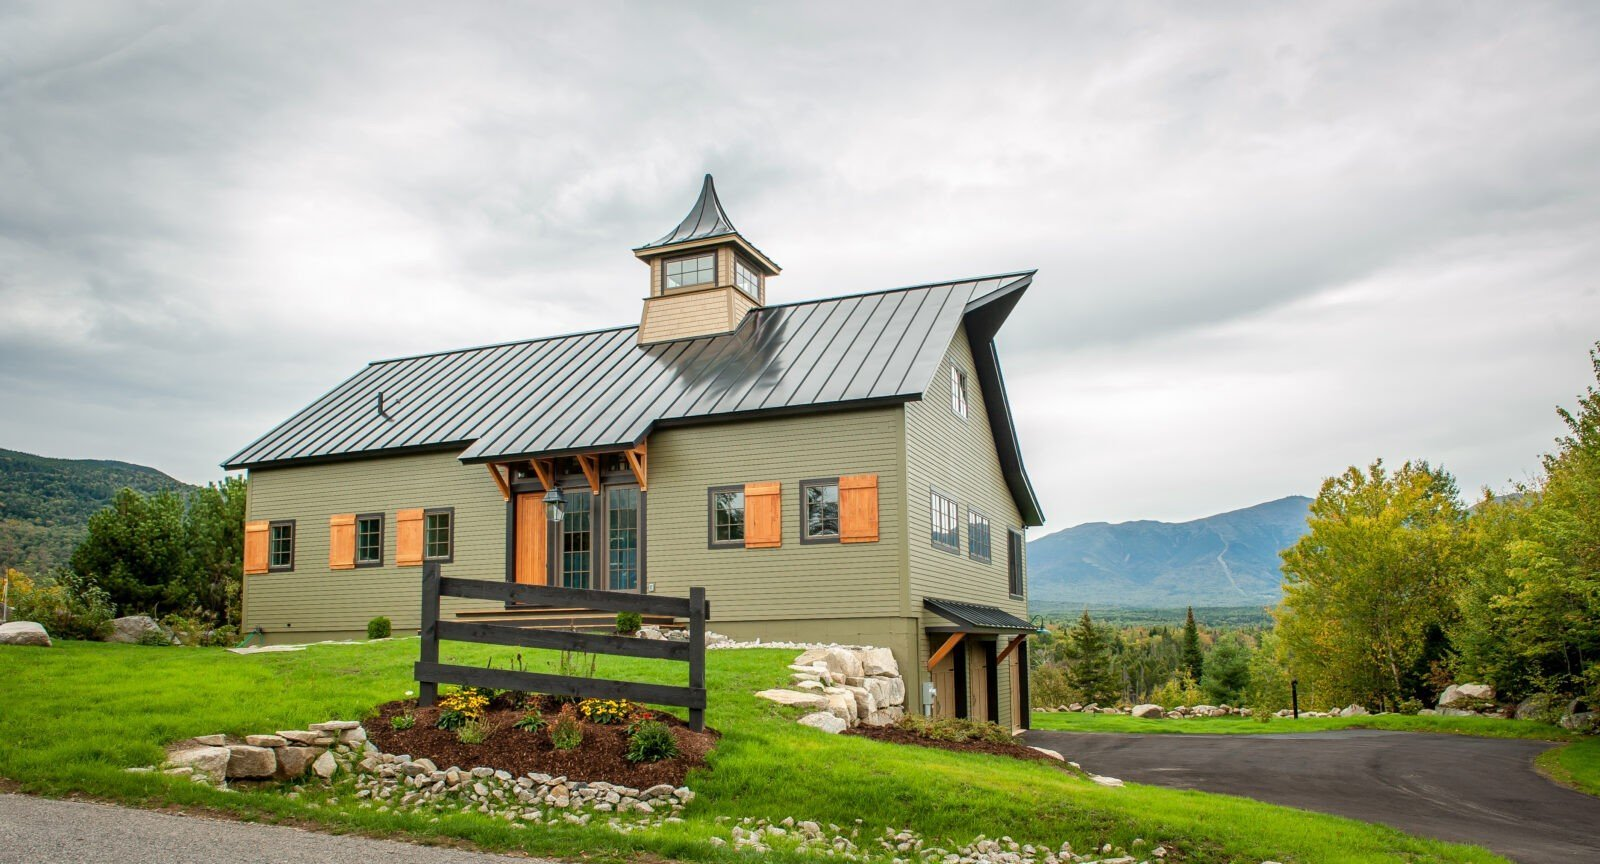 Top notch barn home plans from the ybh design team for Log barn homes